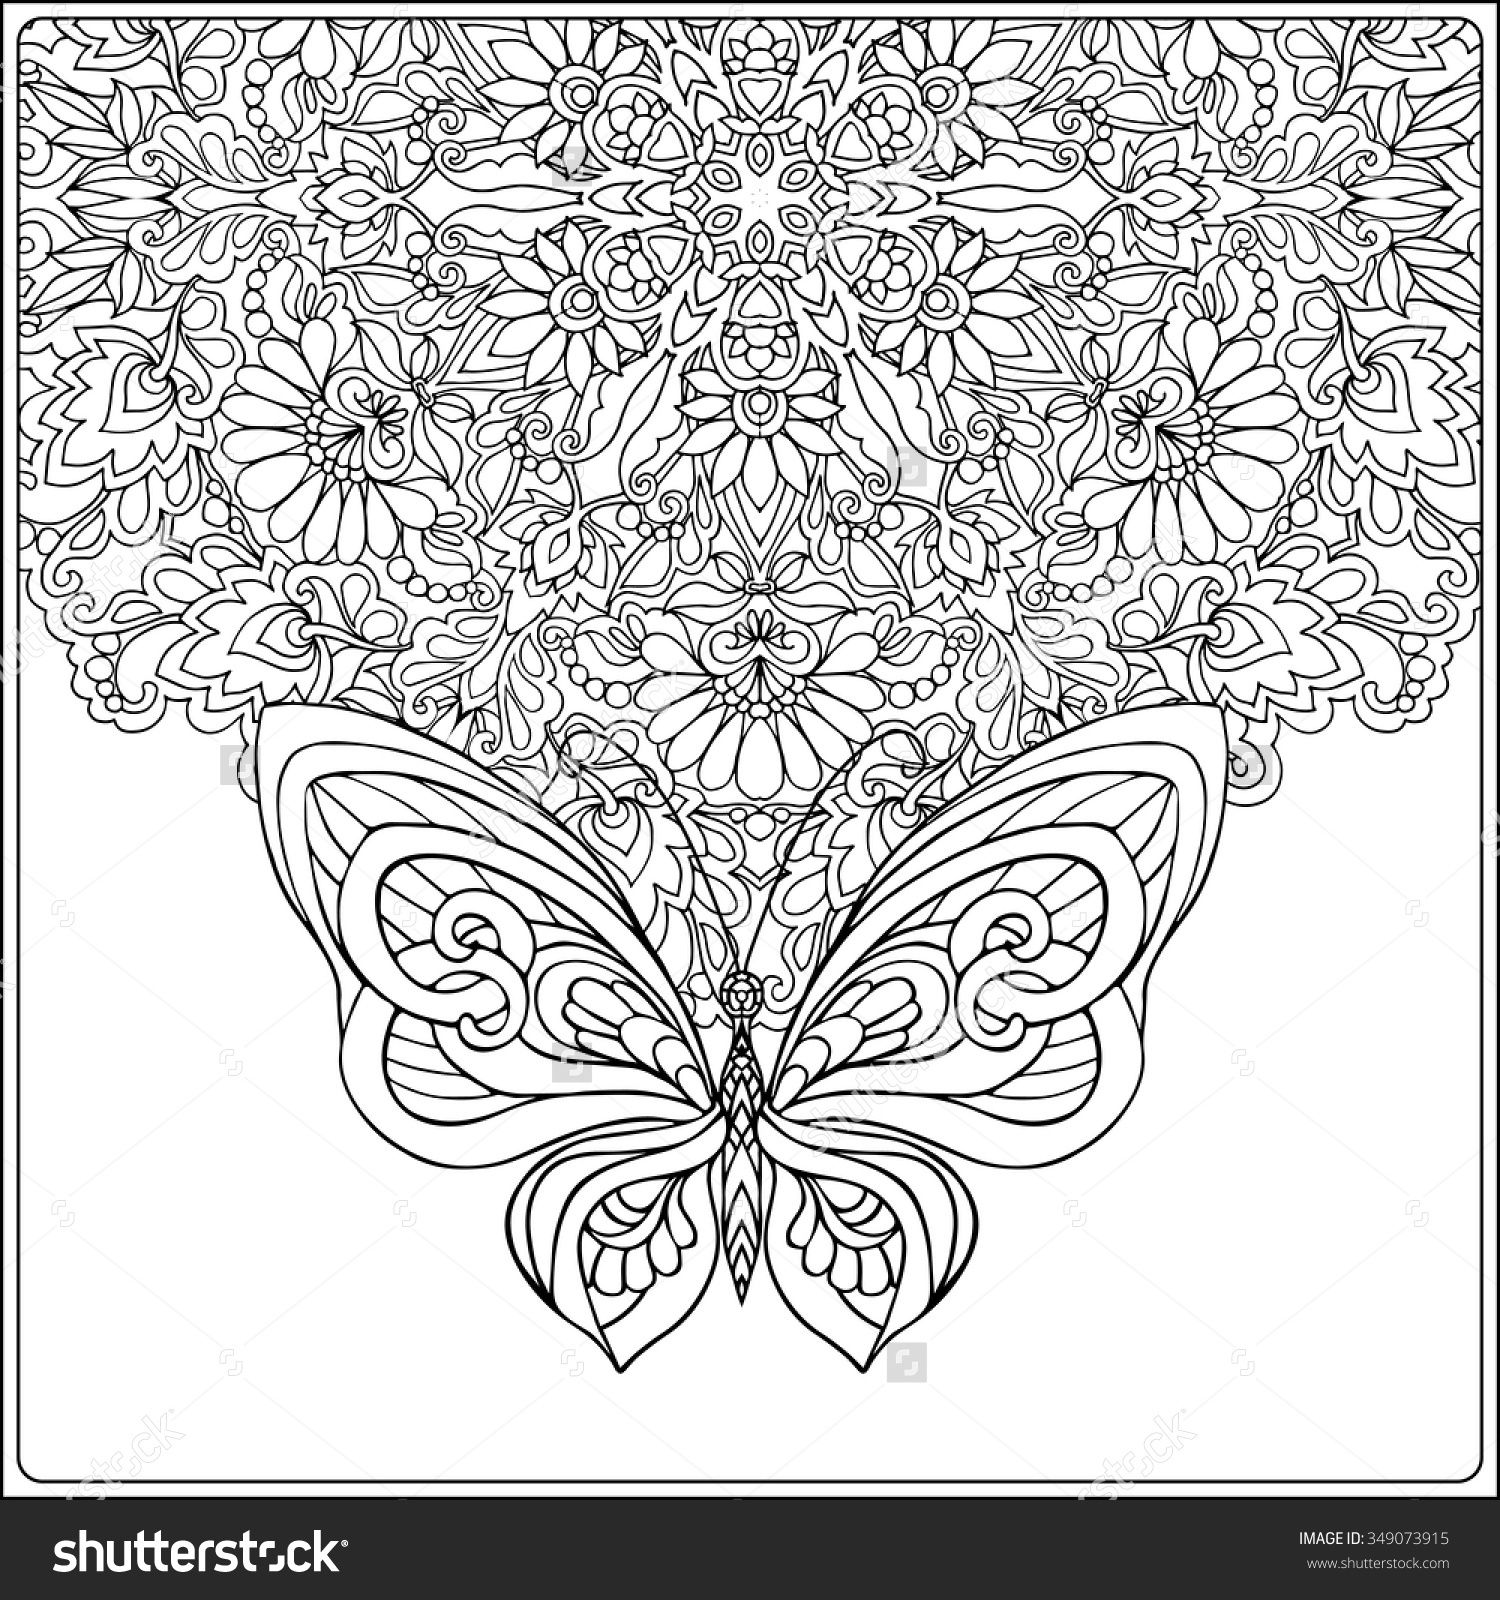 floral mandala colouring pages for adults - Google Search | Coloring ...